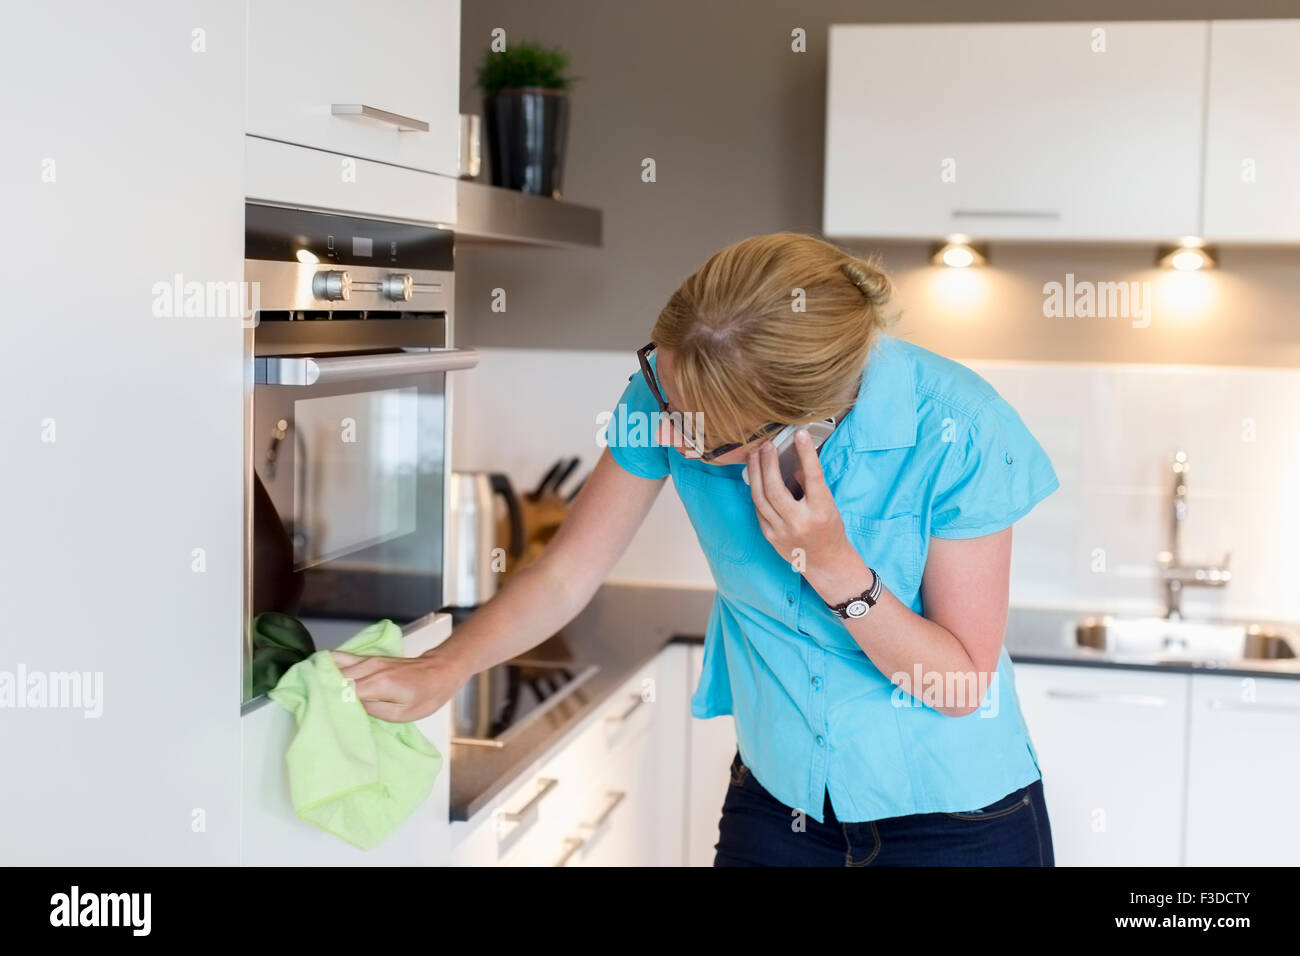 Cleaning Kitchen Stock Photos & Cleaning Kitchen Stock Images - Alamy